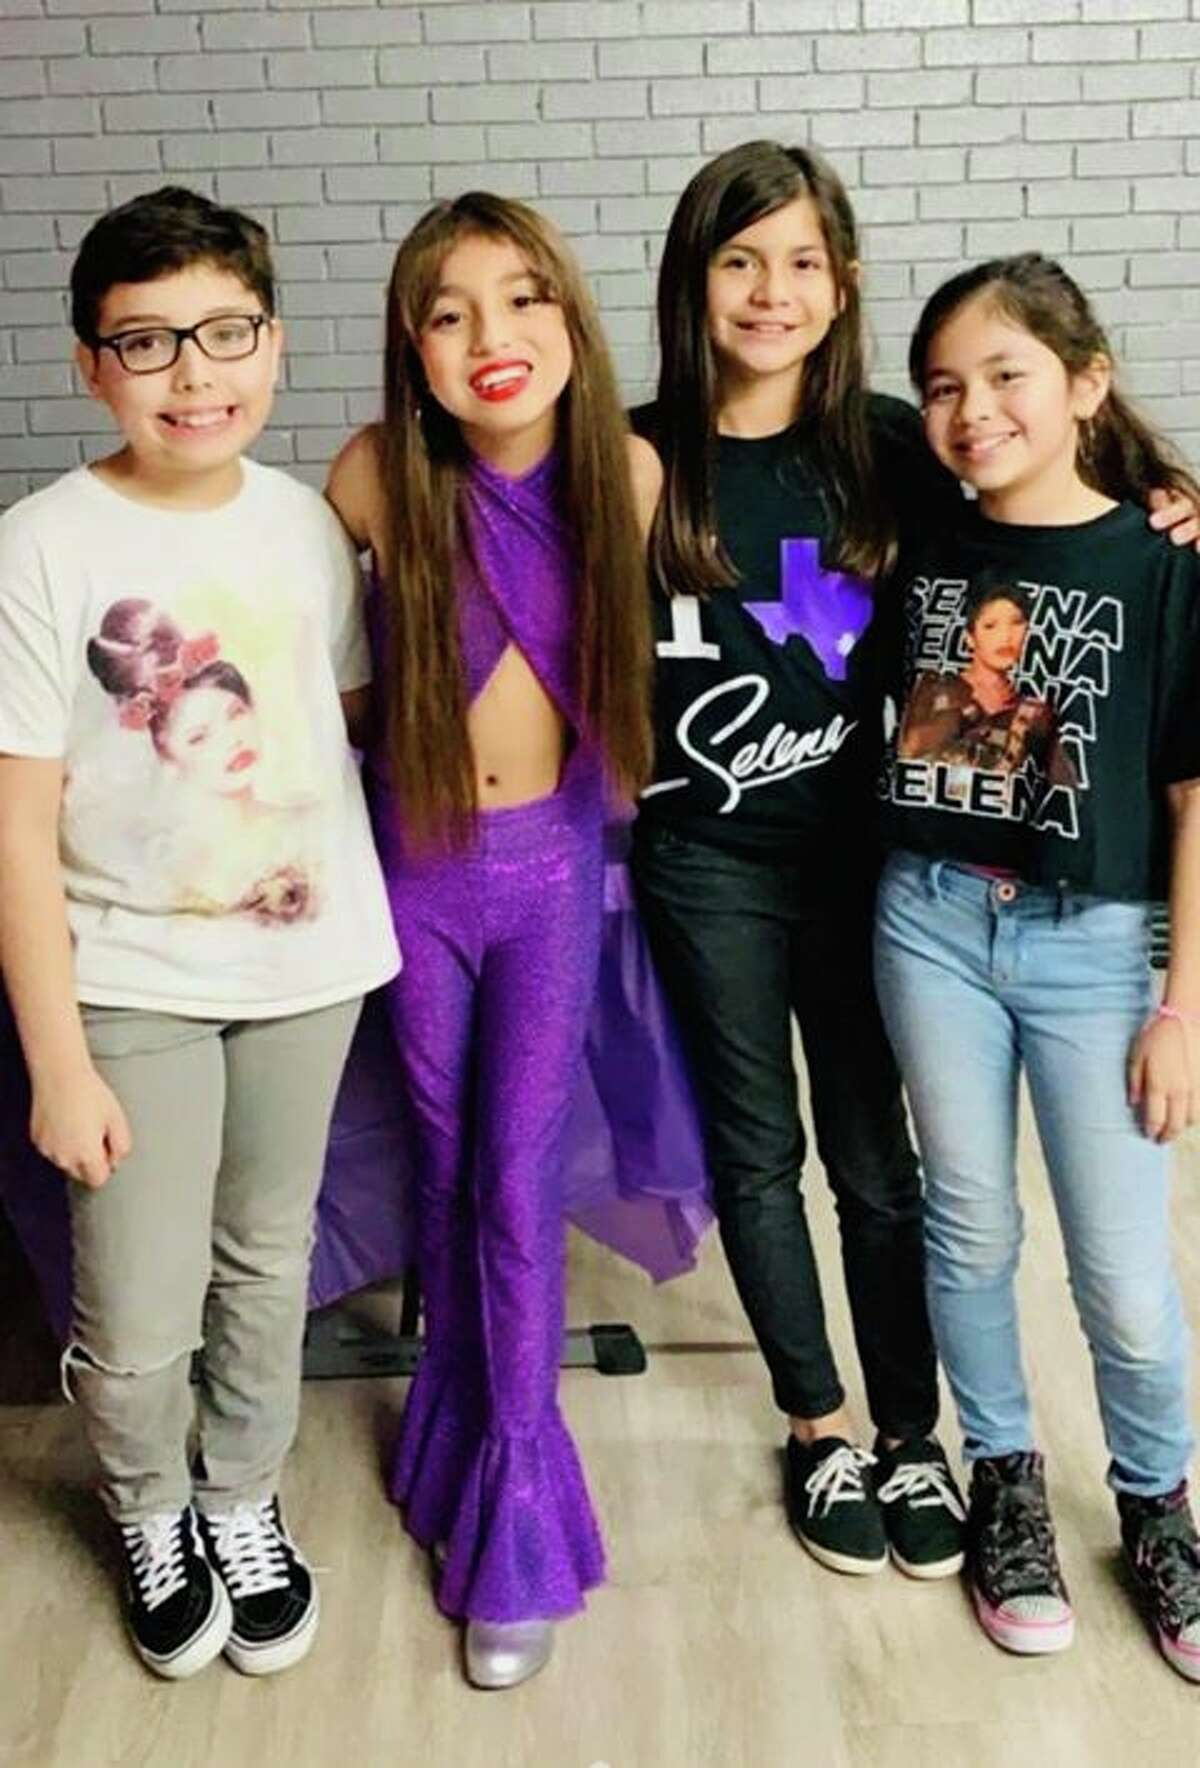 Reiyna Rodriguez brought Selena to life for her 11th birthday party.